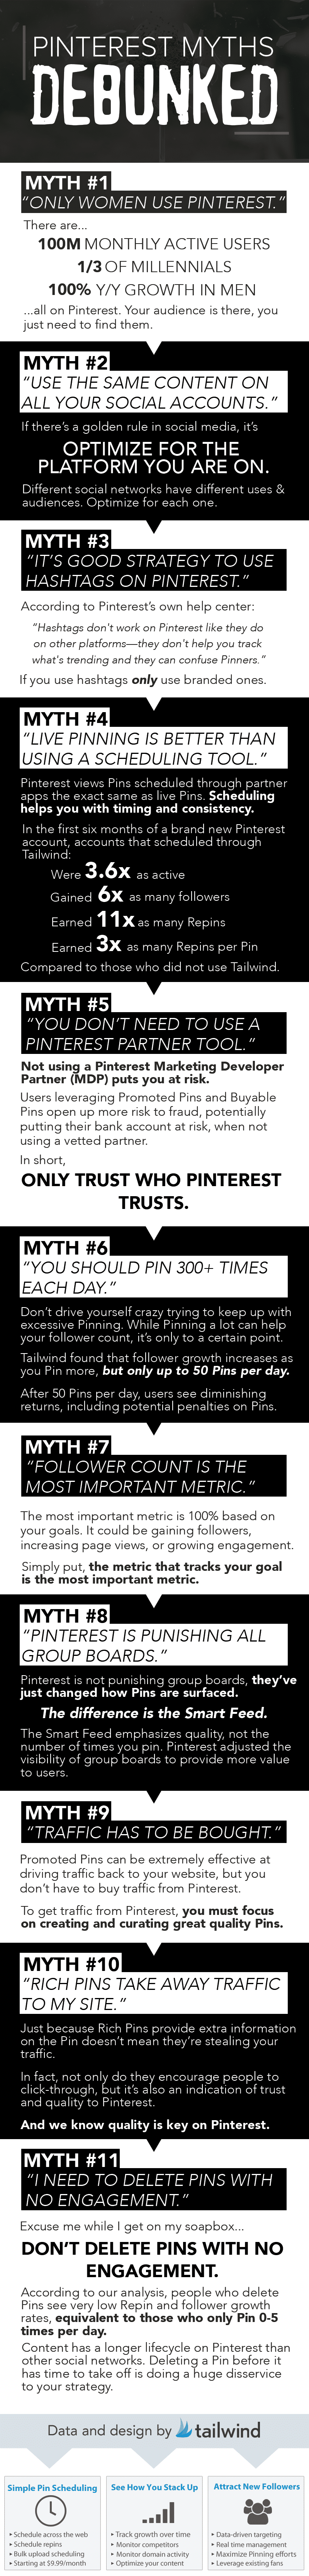 11 Pinterest Myths Debunked Infographic